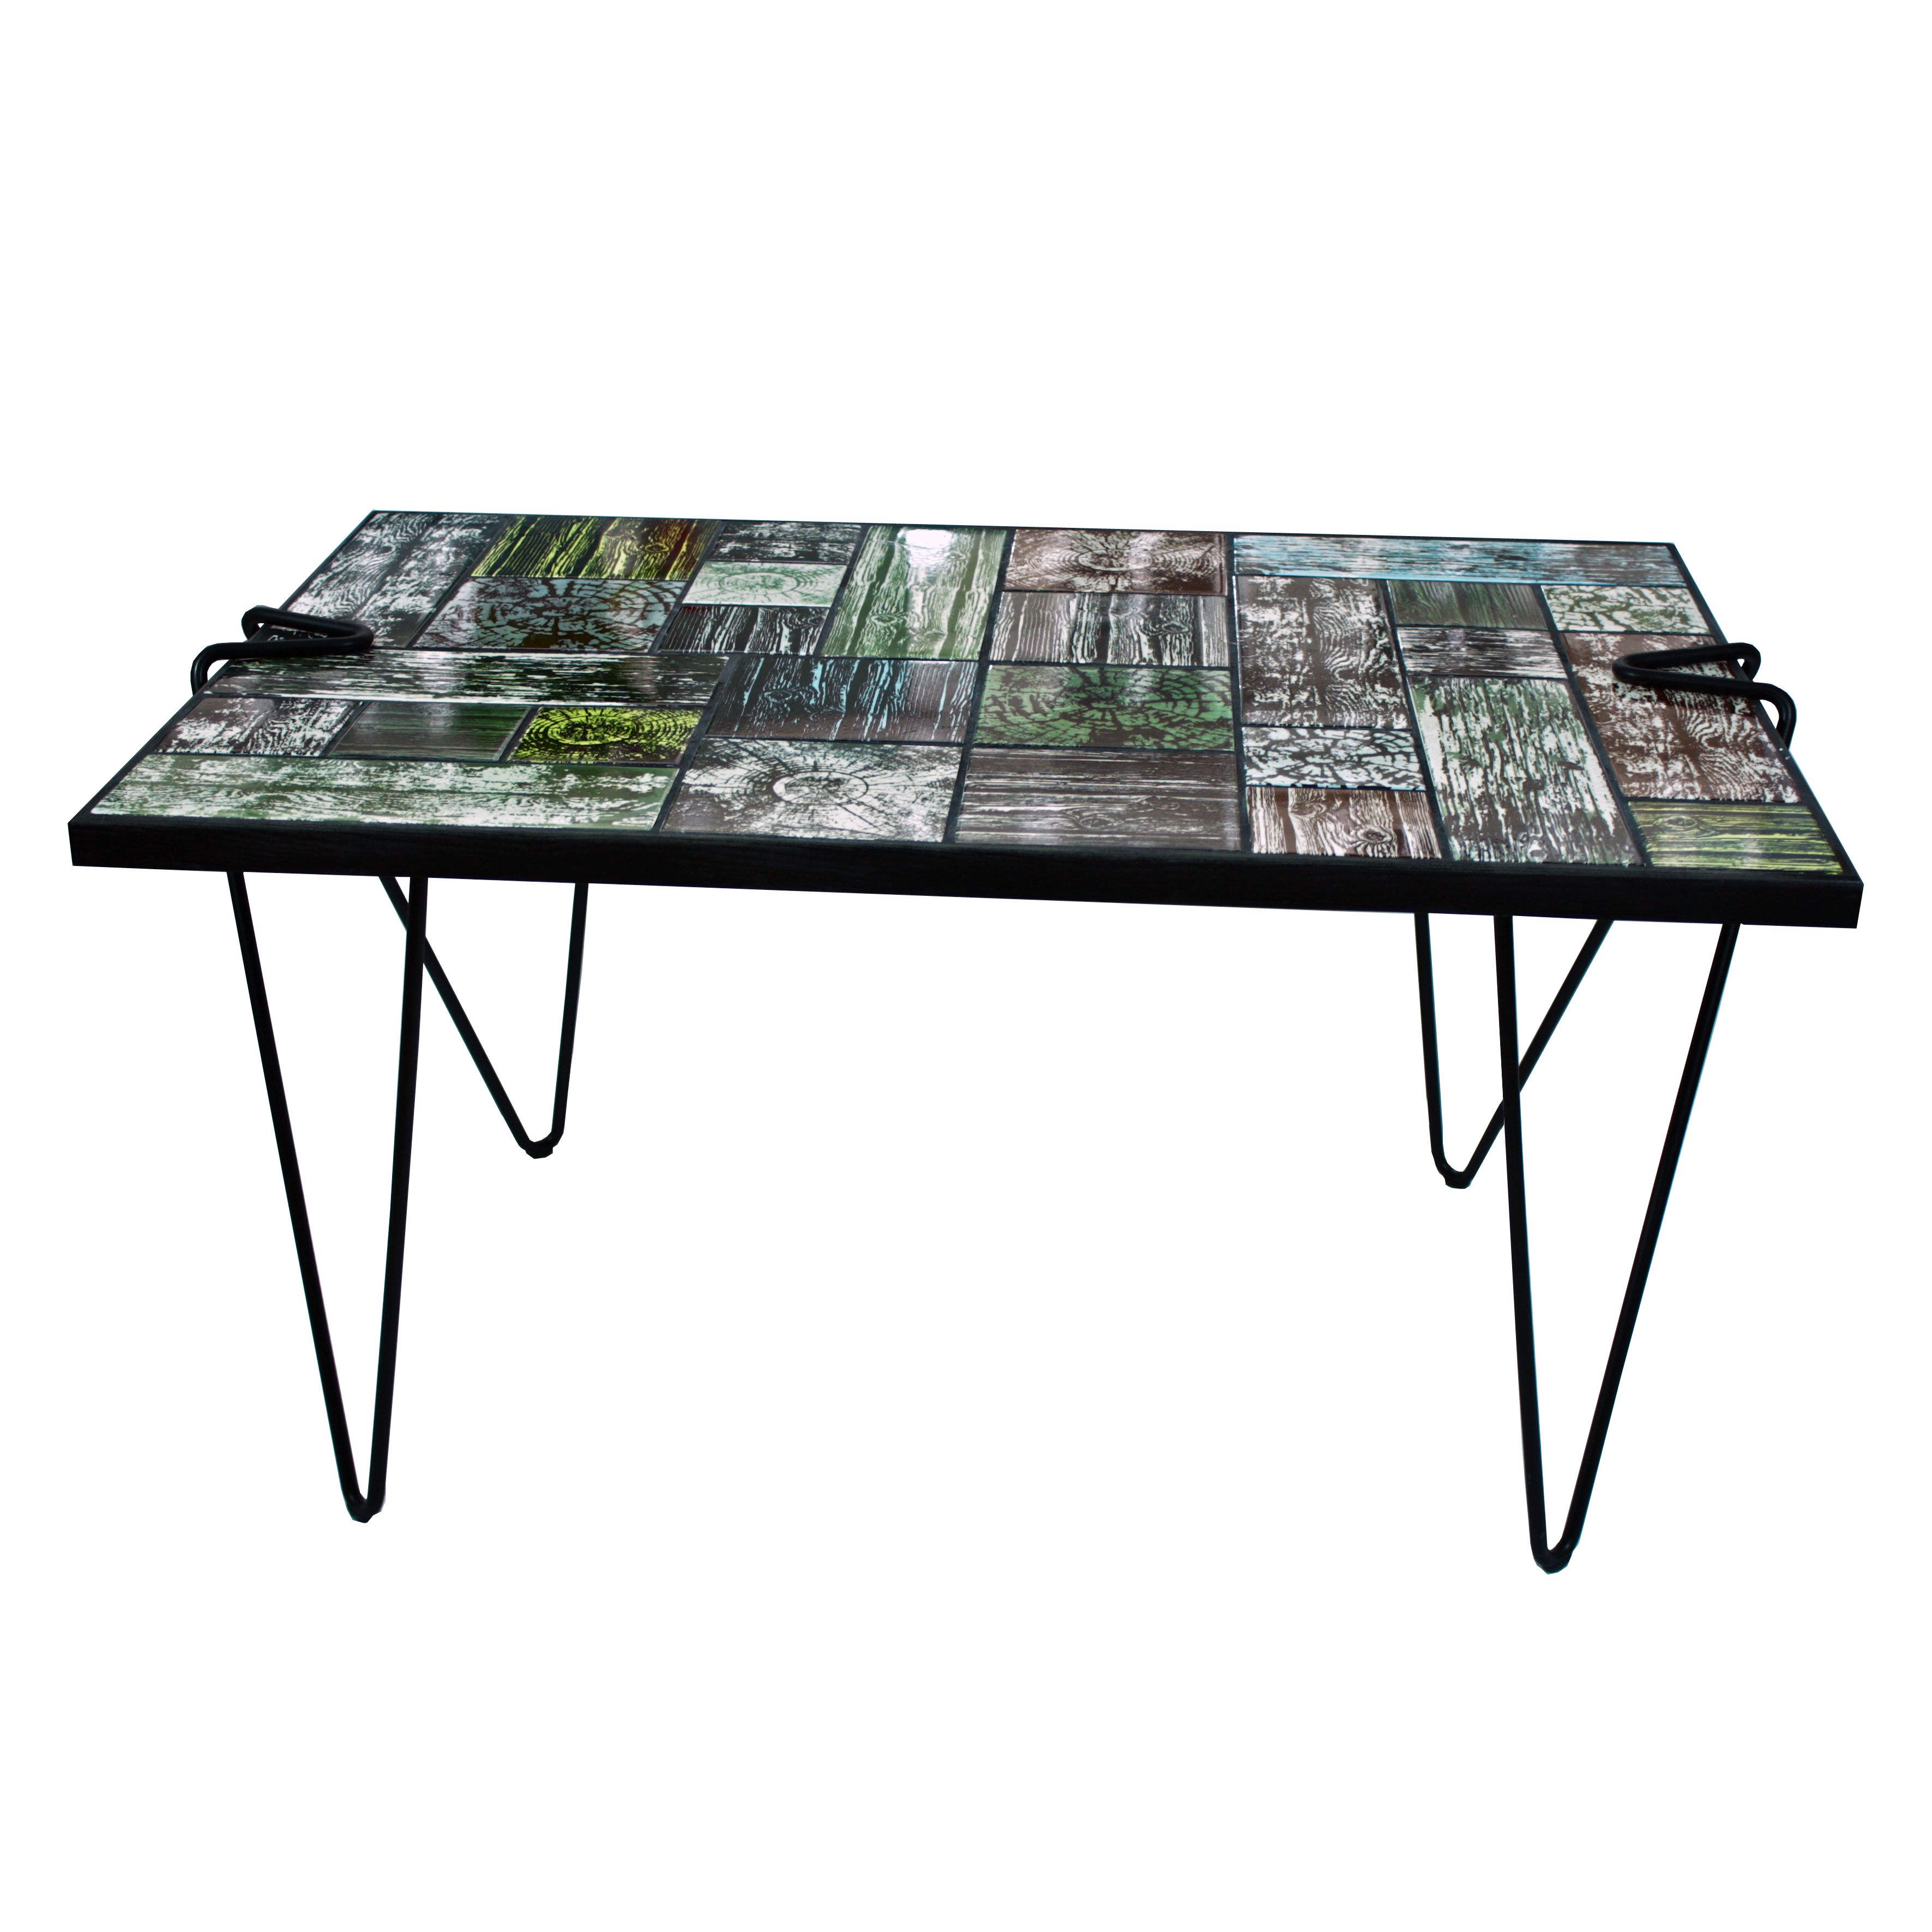 Wannabe Wood  The Table Ceramic Tile Top Table Screen